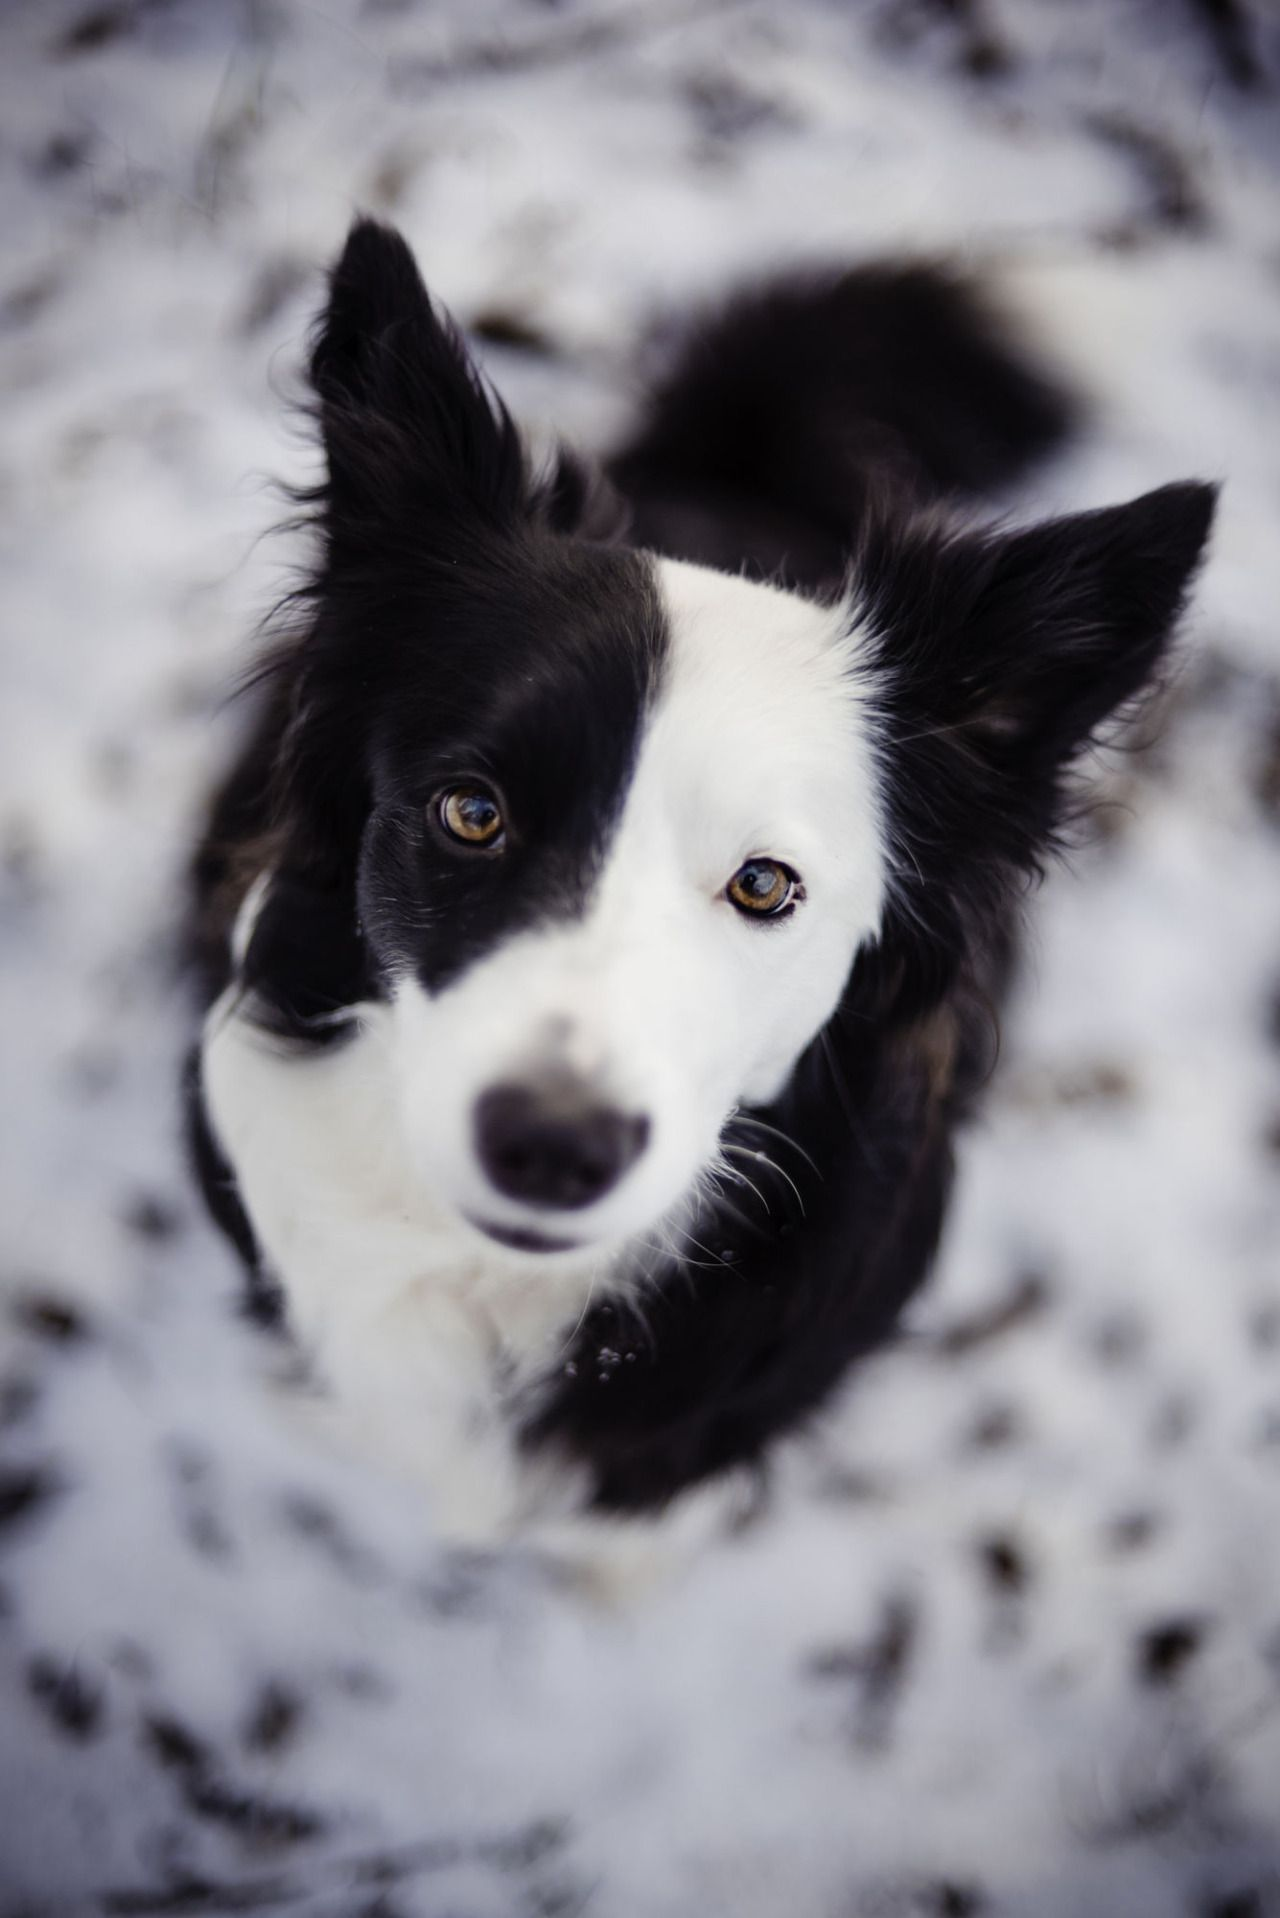 Handsomedogs Katerina Kasparova Coco Border Collies And More